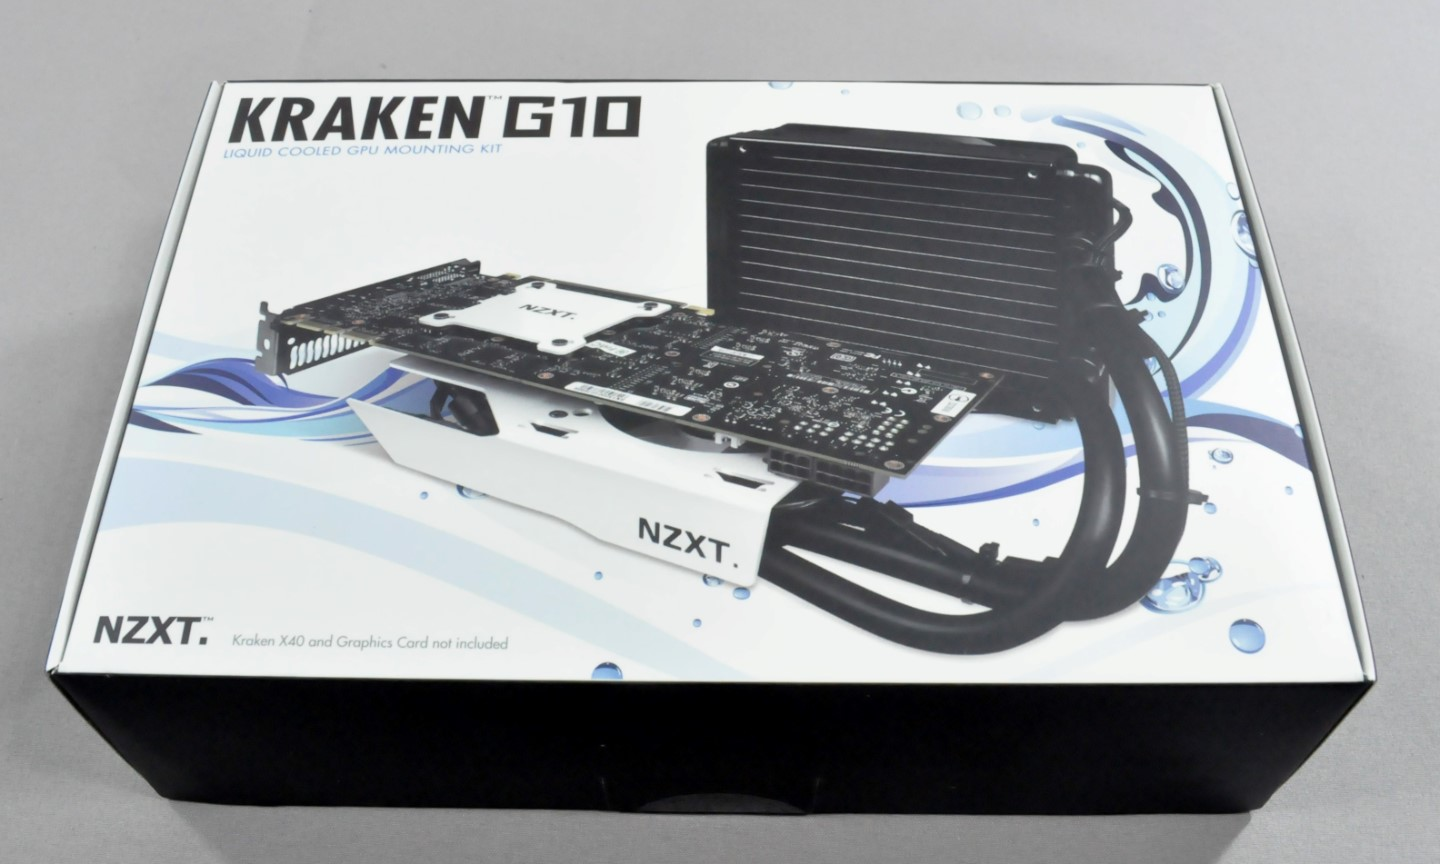 Nzxt Kraken G10 Review Liquid Cooling For Your Gpu